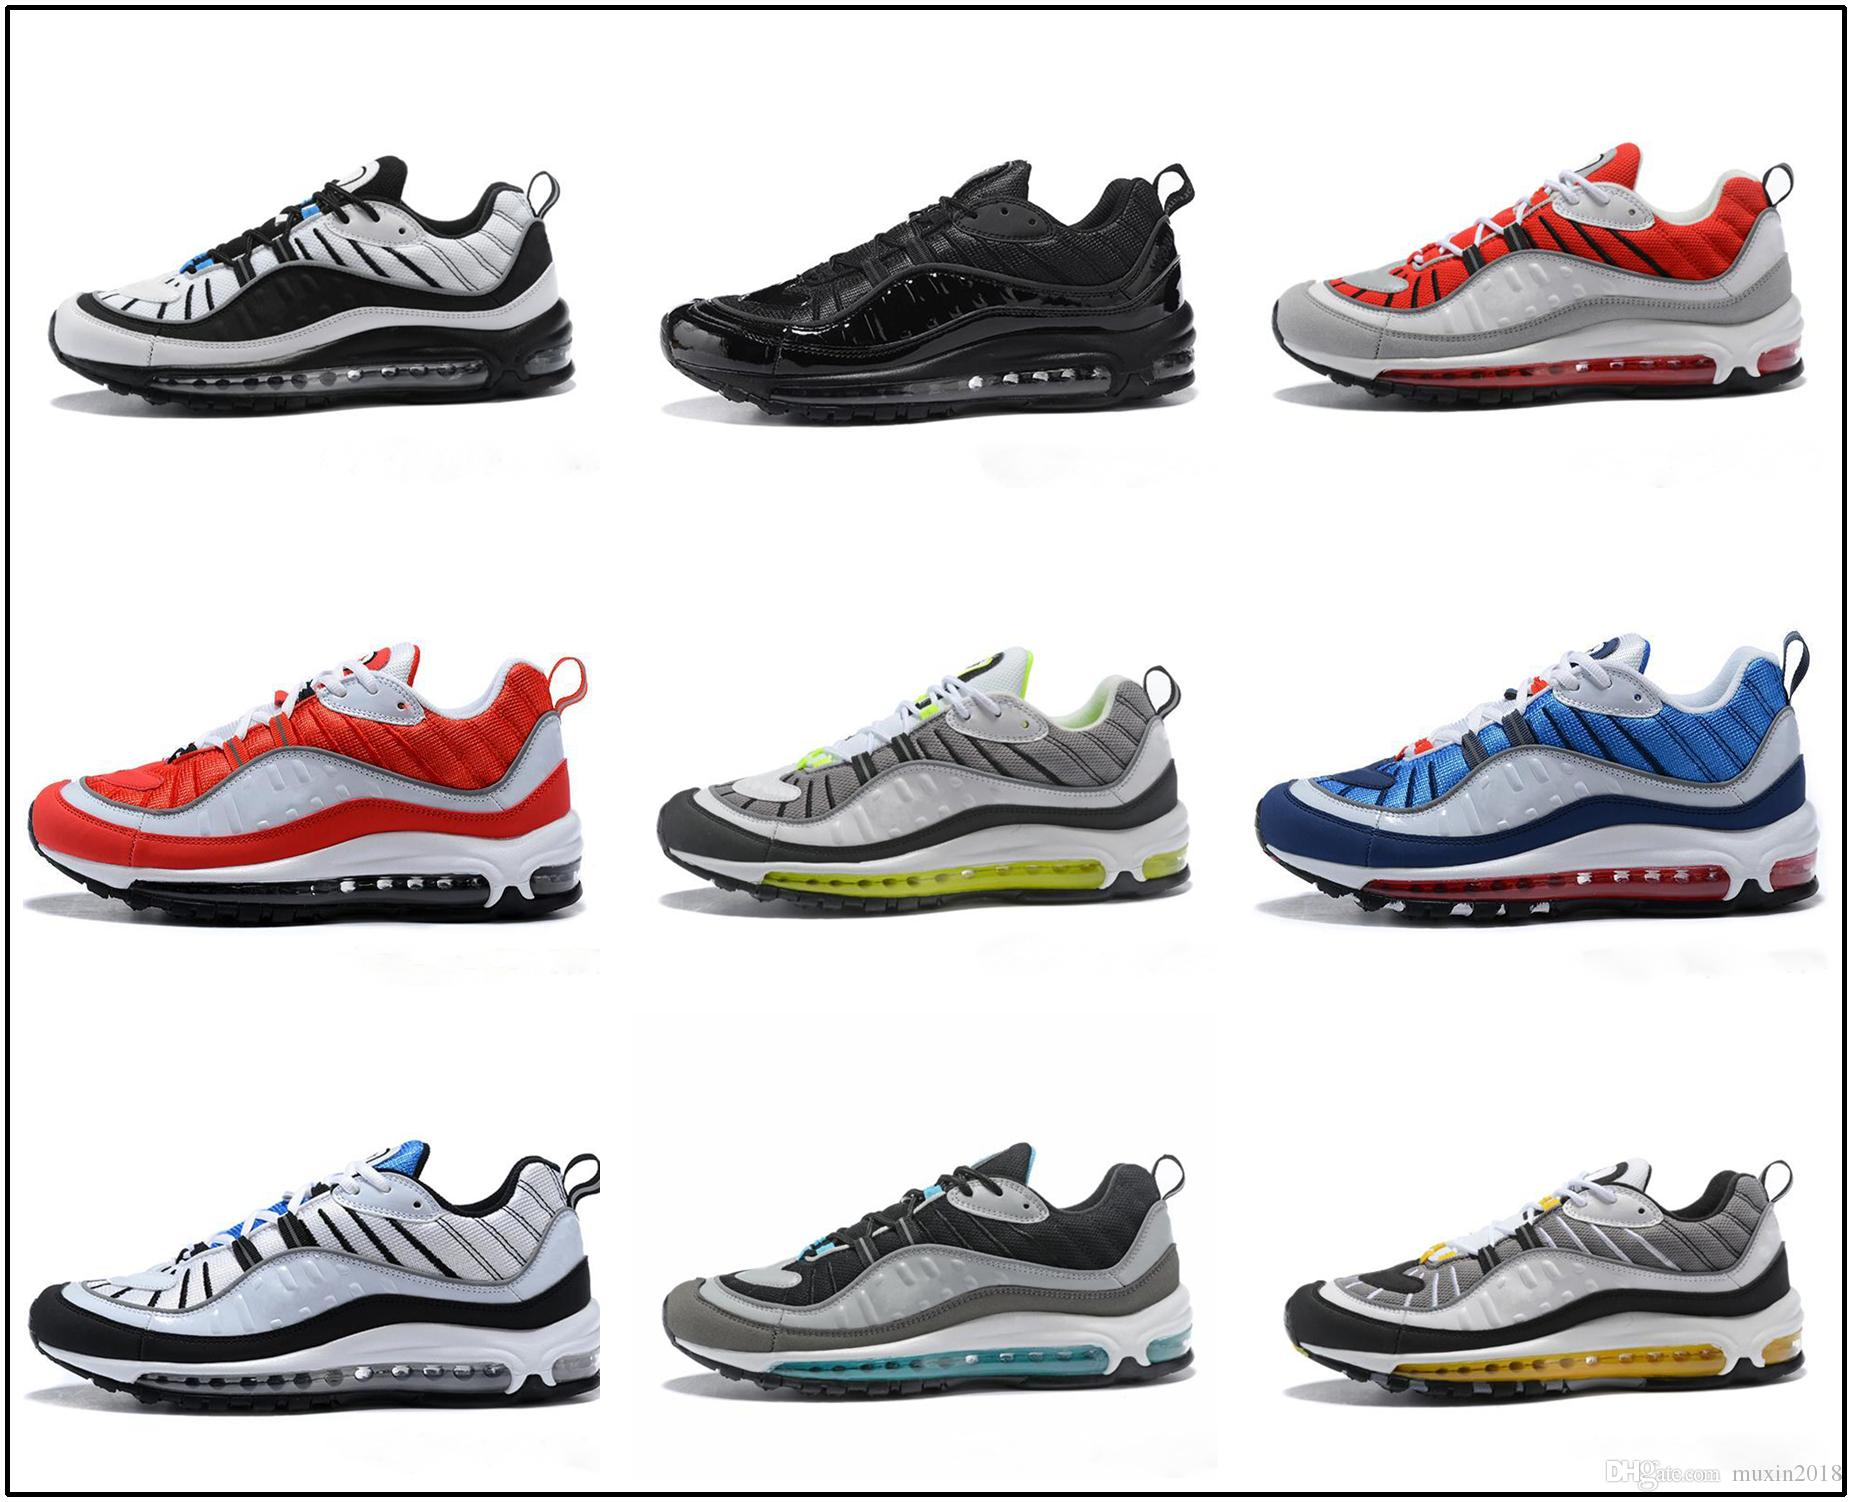 cheap for discount f29db 7e2d6 Acquista Nike Air Max 98 Airmax 2018 New 98 South Beach Scarpe Da Corsa 98s  QS Cone Gundam AOP UK GMT Triple Nero Bianco Trainer Sport Outdoor Sneakers  ...